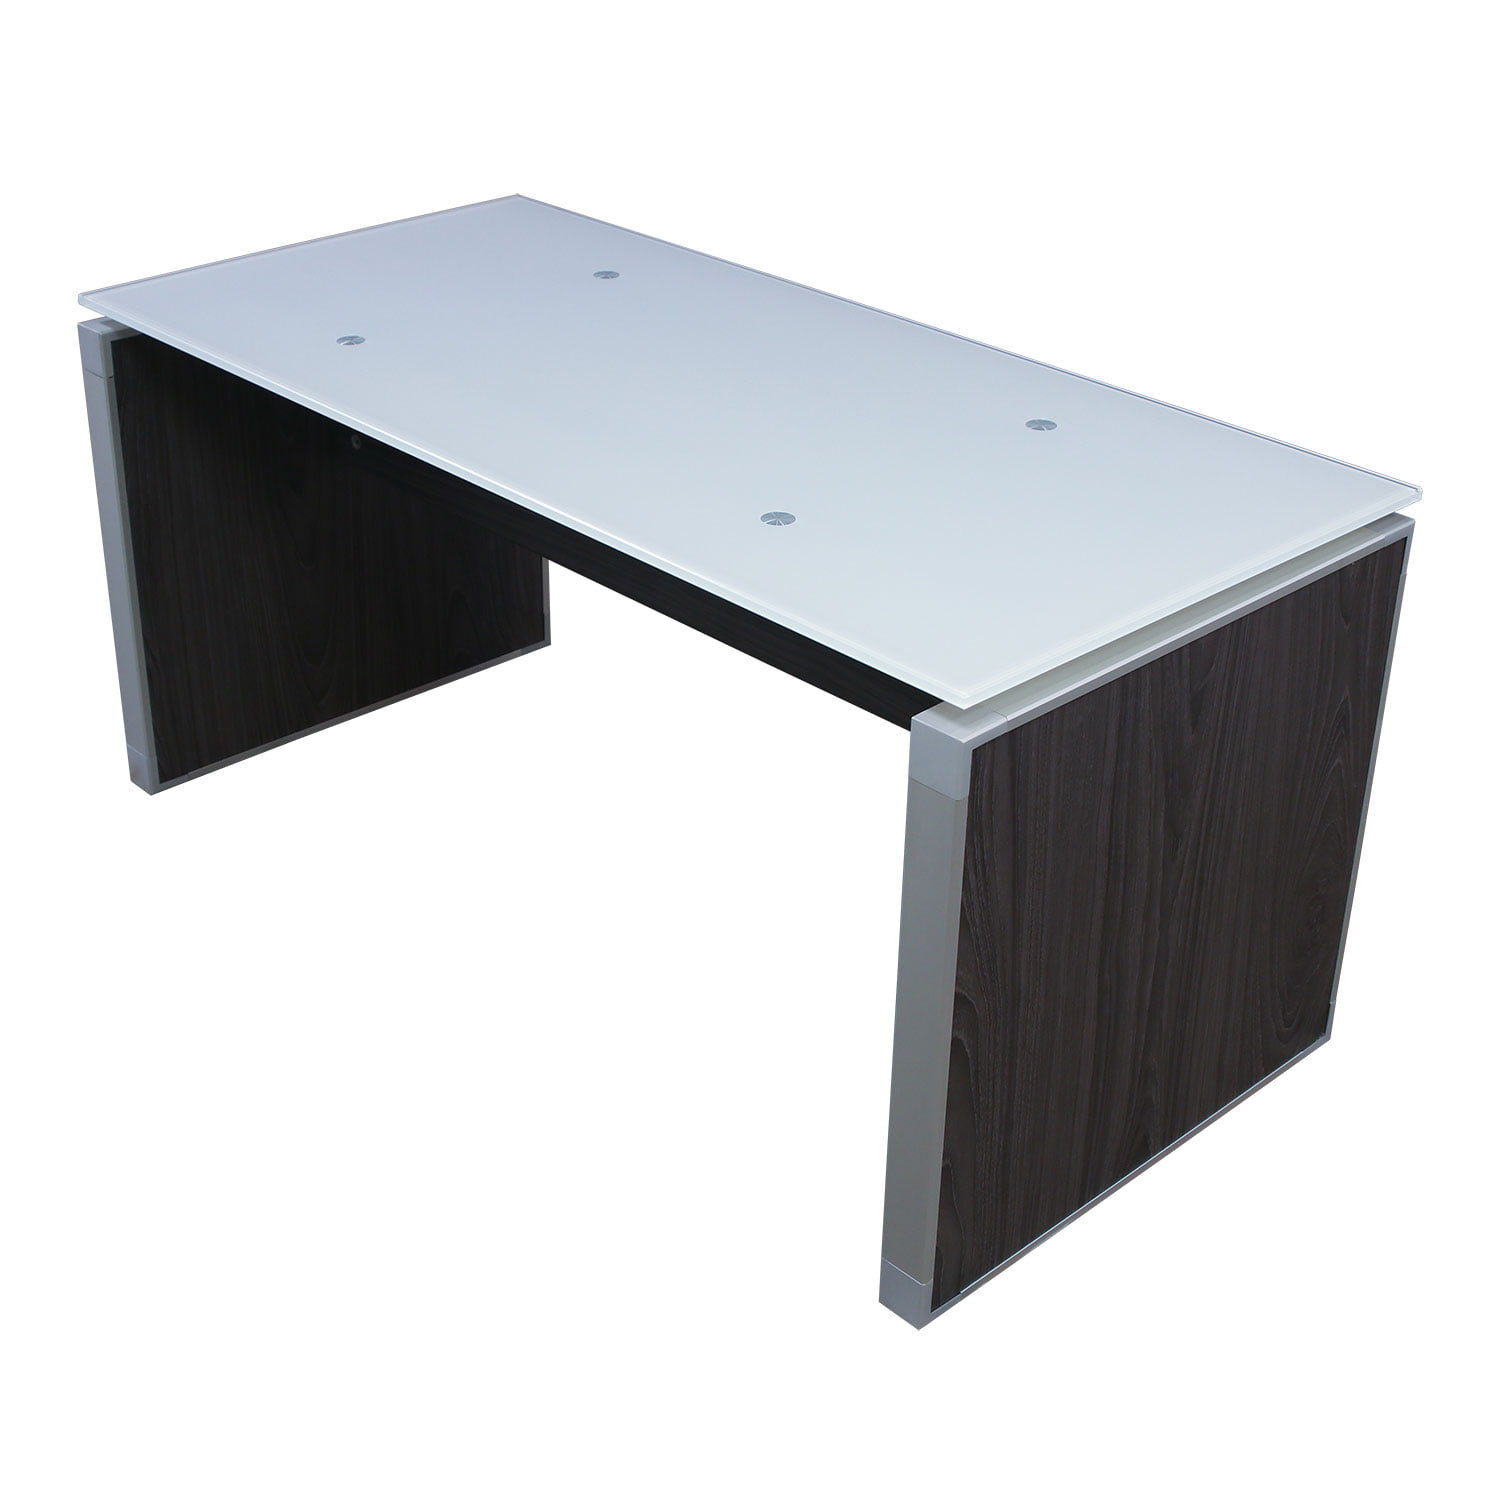 Manhattan 20x42 Glass Top Coffee Table, Cashmere Gray